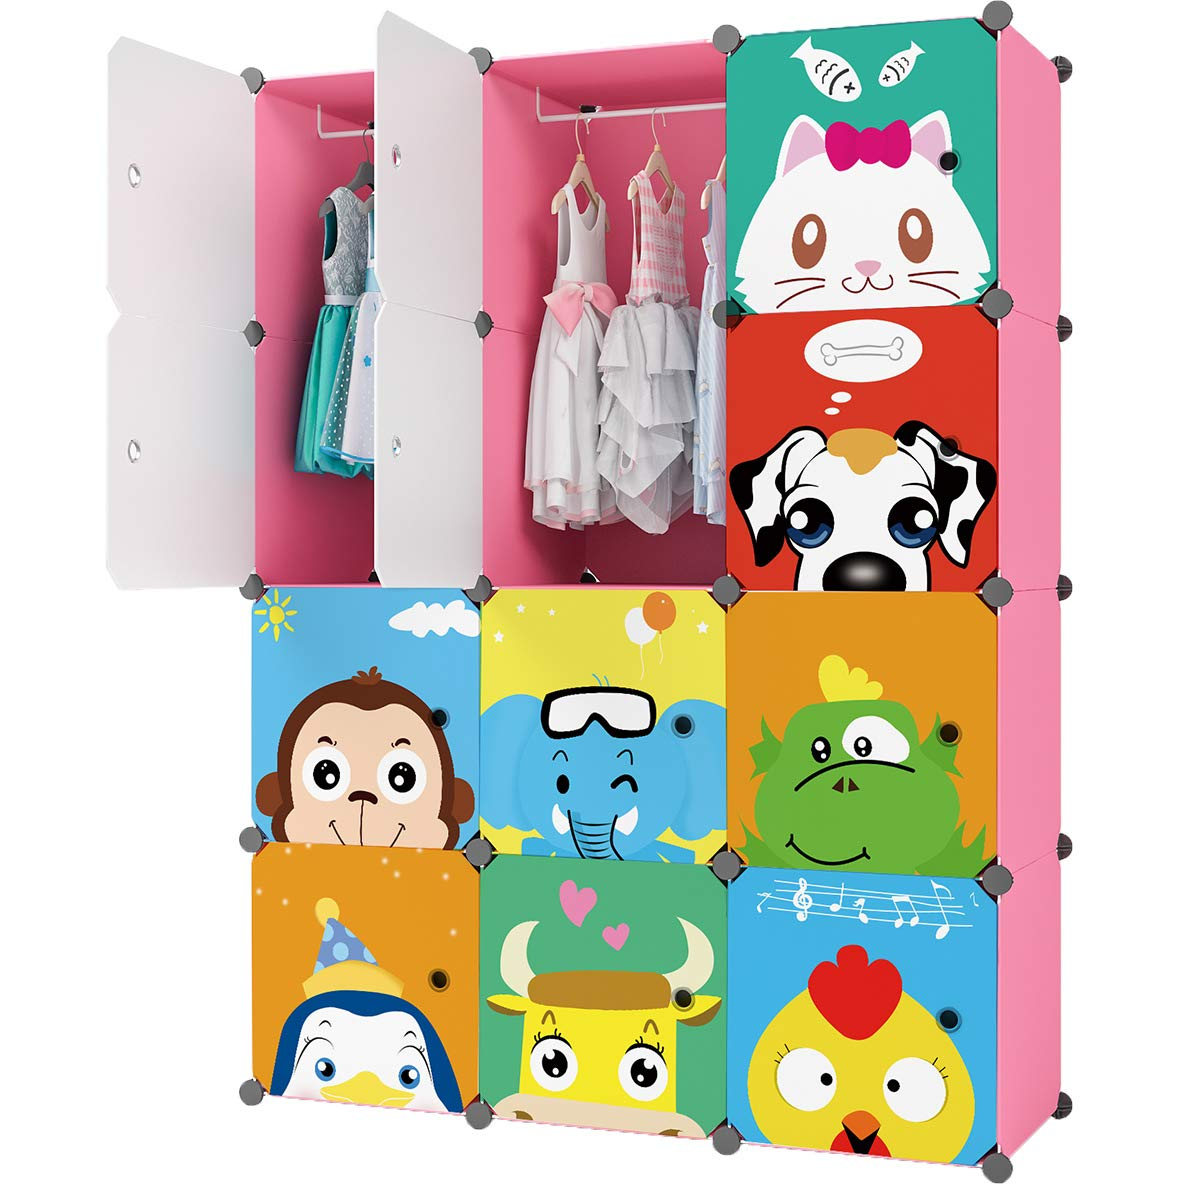 KOUSI Portable Kids Wardrobe Closet Children Dresser Hanging Storage Rack Clothes Closet Bedroom Armoire Cube Organizer Formaldehyde-Free Furniture (Pink, 8 Cubes&2 Hanging Sections)